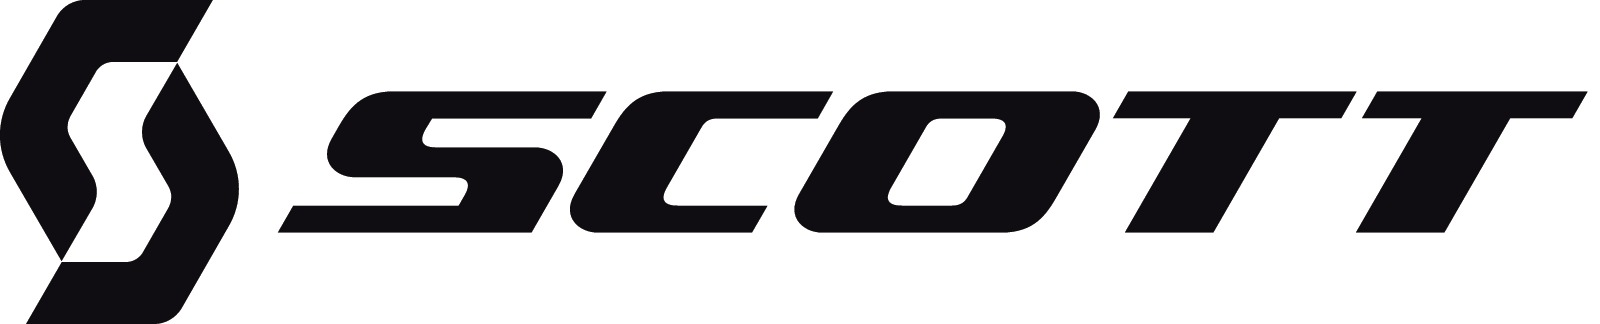 SCOTT_LOGO__HORIZONTAL_BLACK.jpg